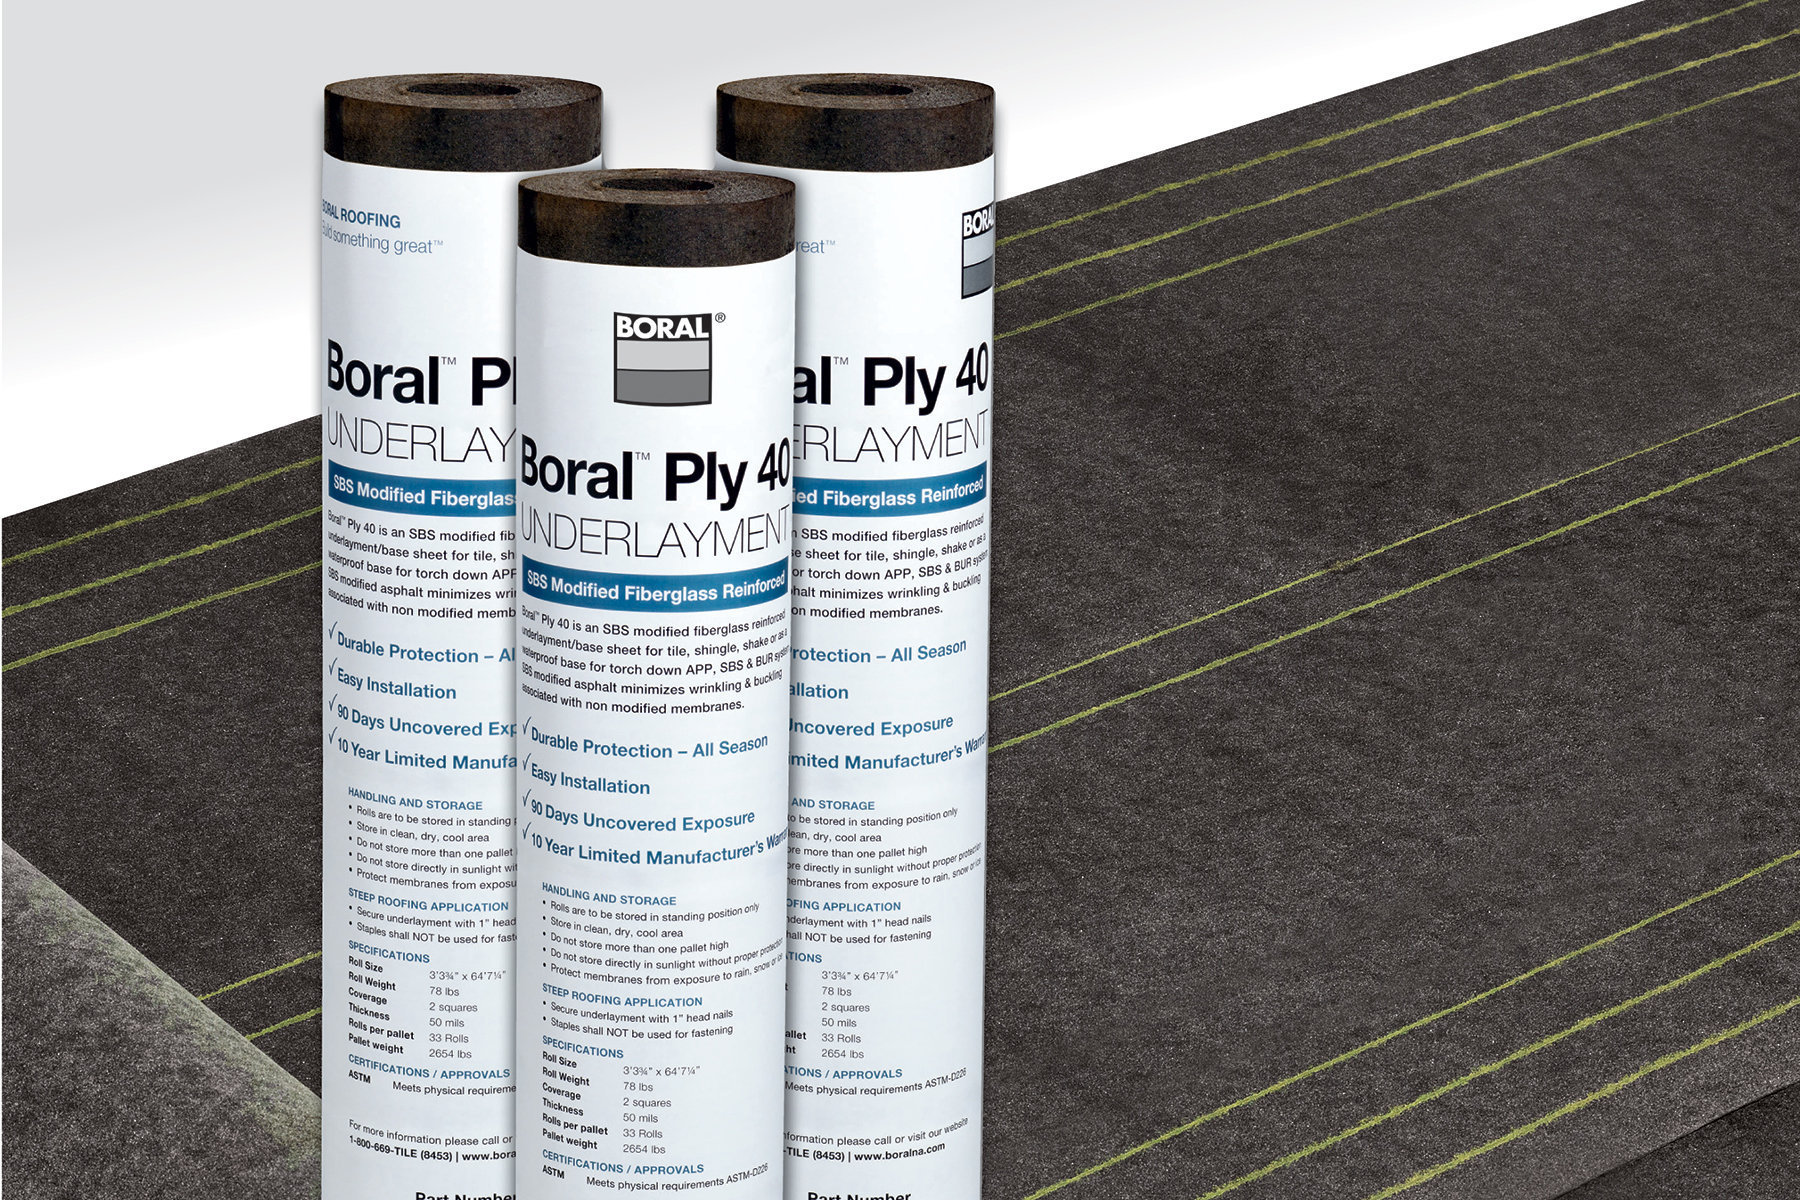 Boral S Ply 40 Underlayment Prosales Online Products